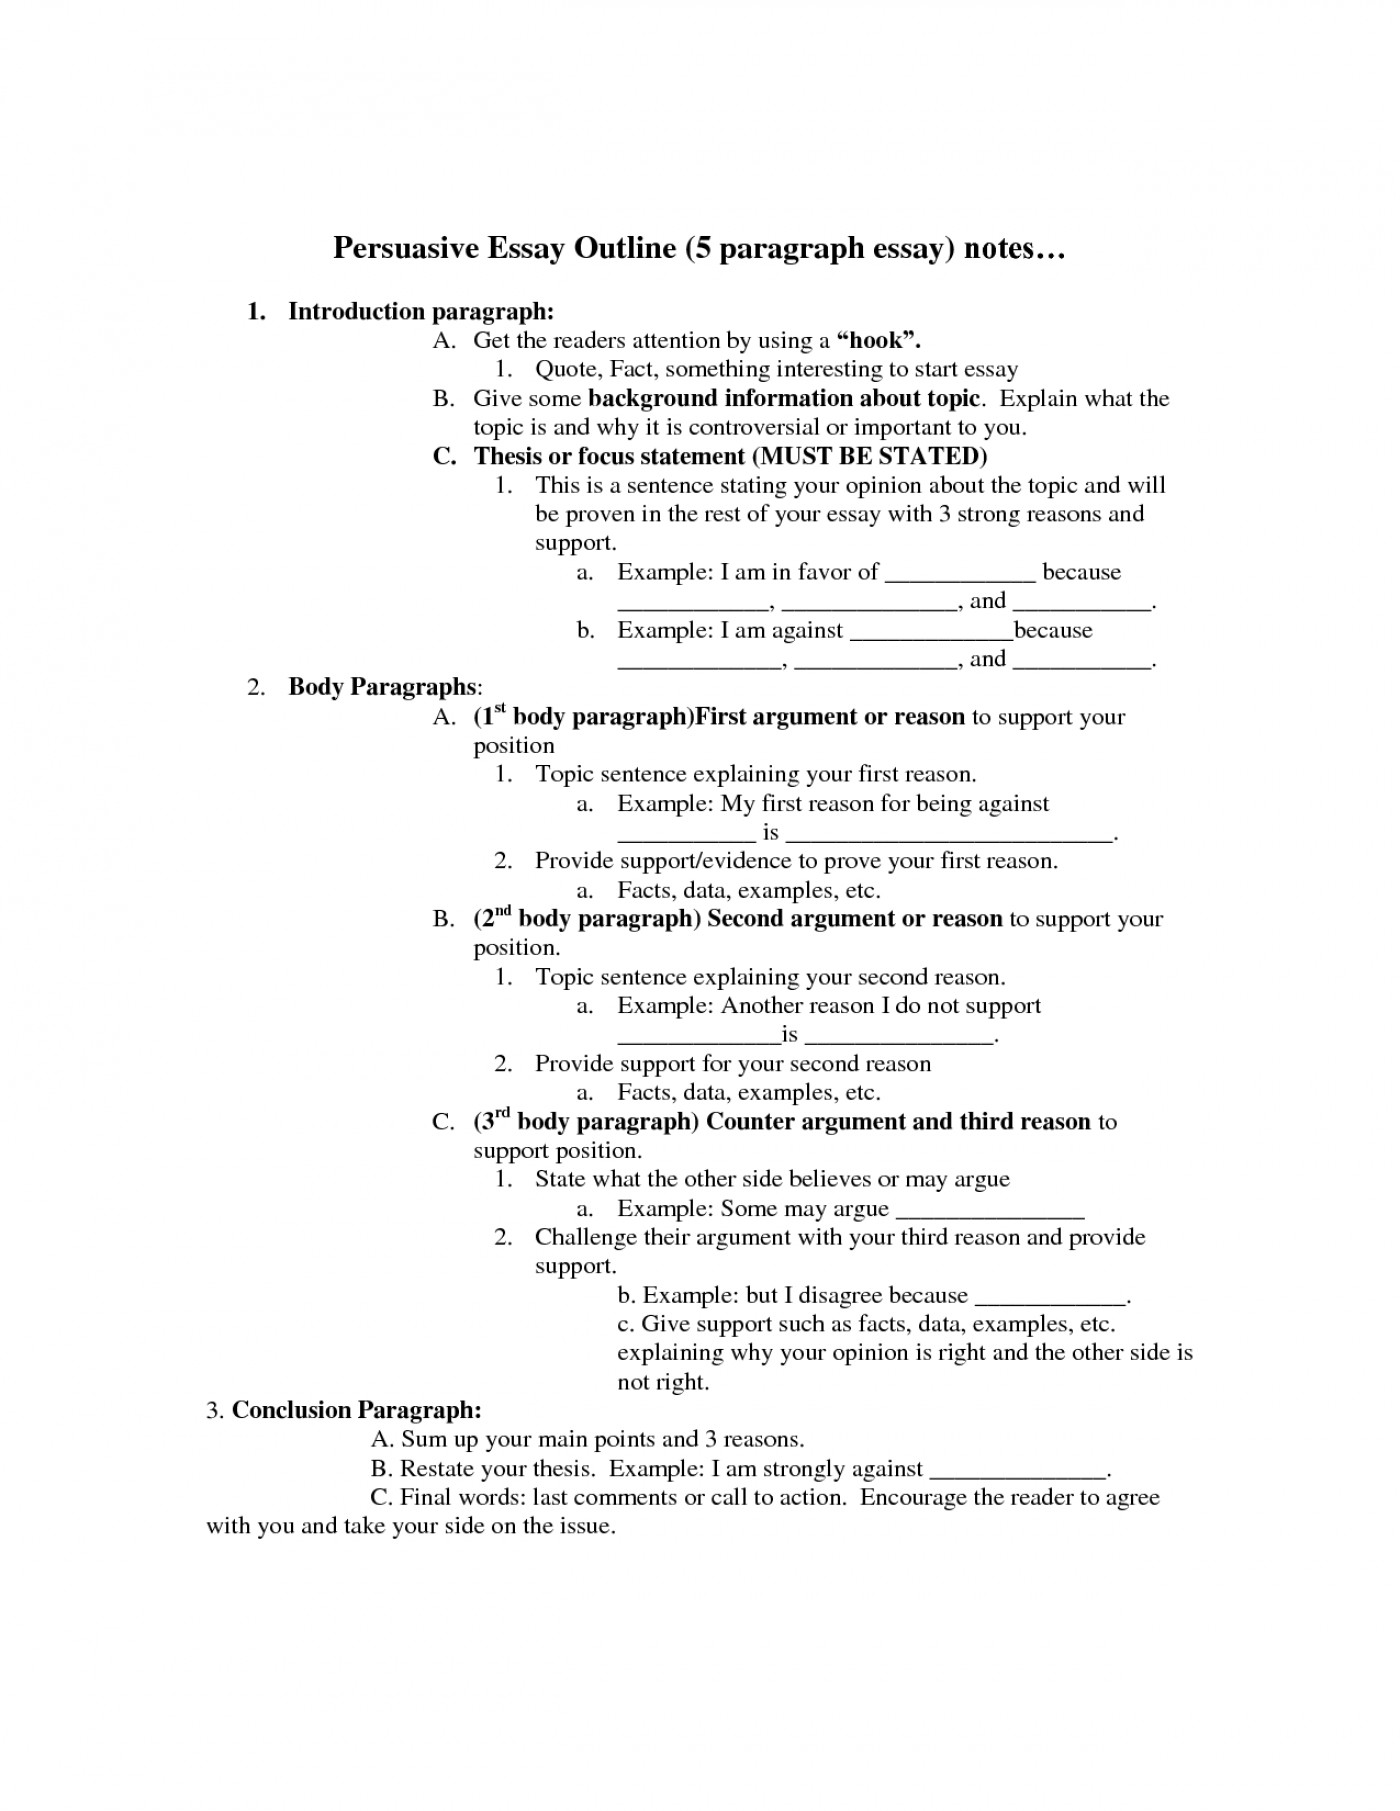 006 Persuasive Essay Outline Unbelievable 5 Paragraph Template Worksheet Pdf 1400